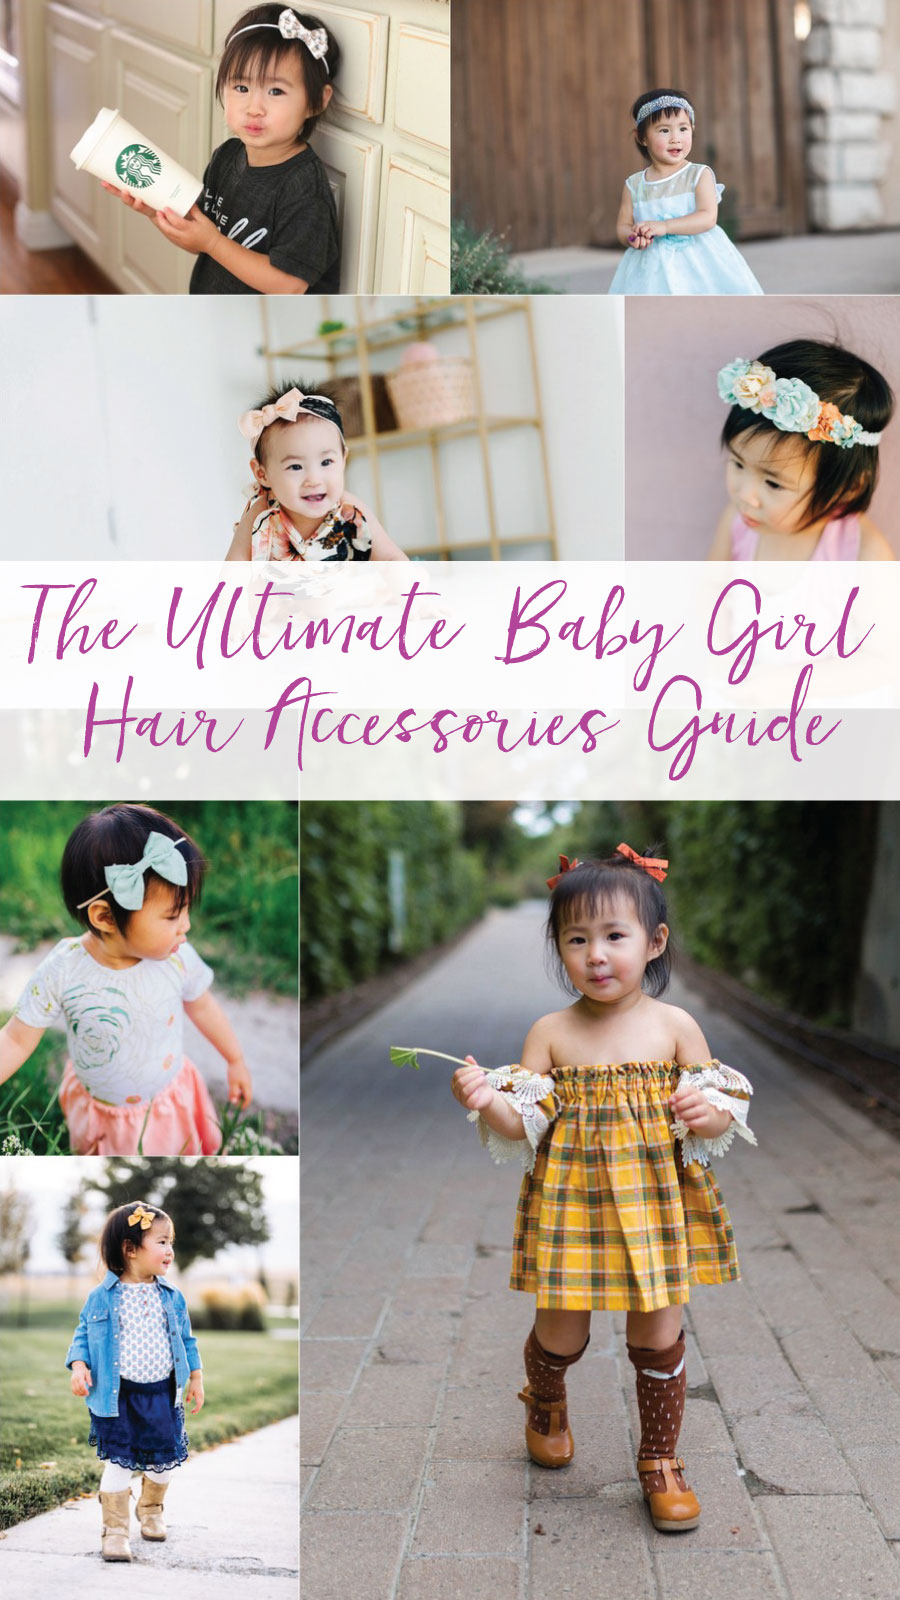 The ultimate baby girl hair accessories guide